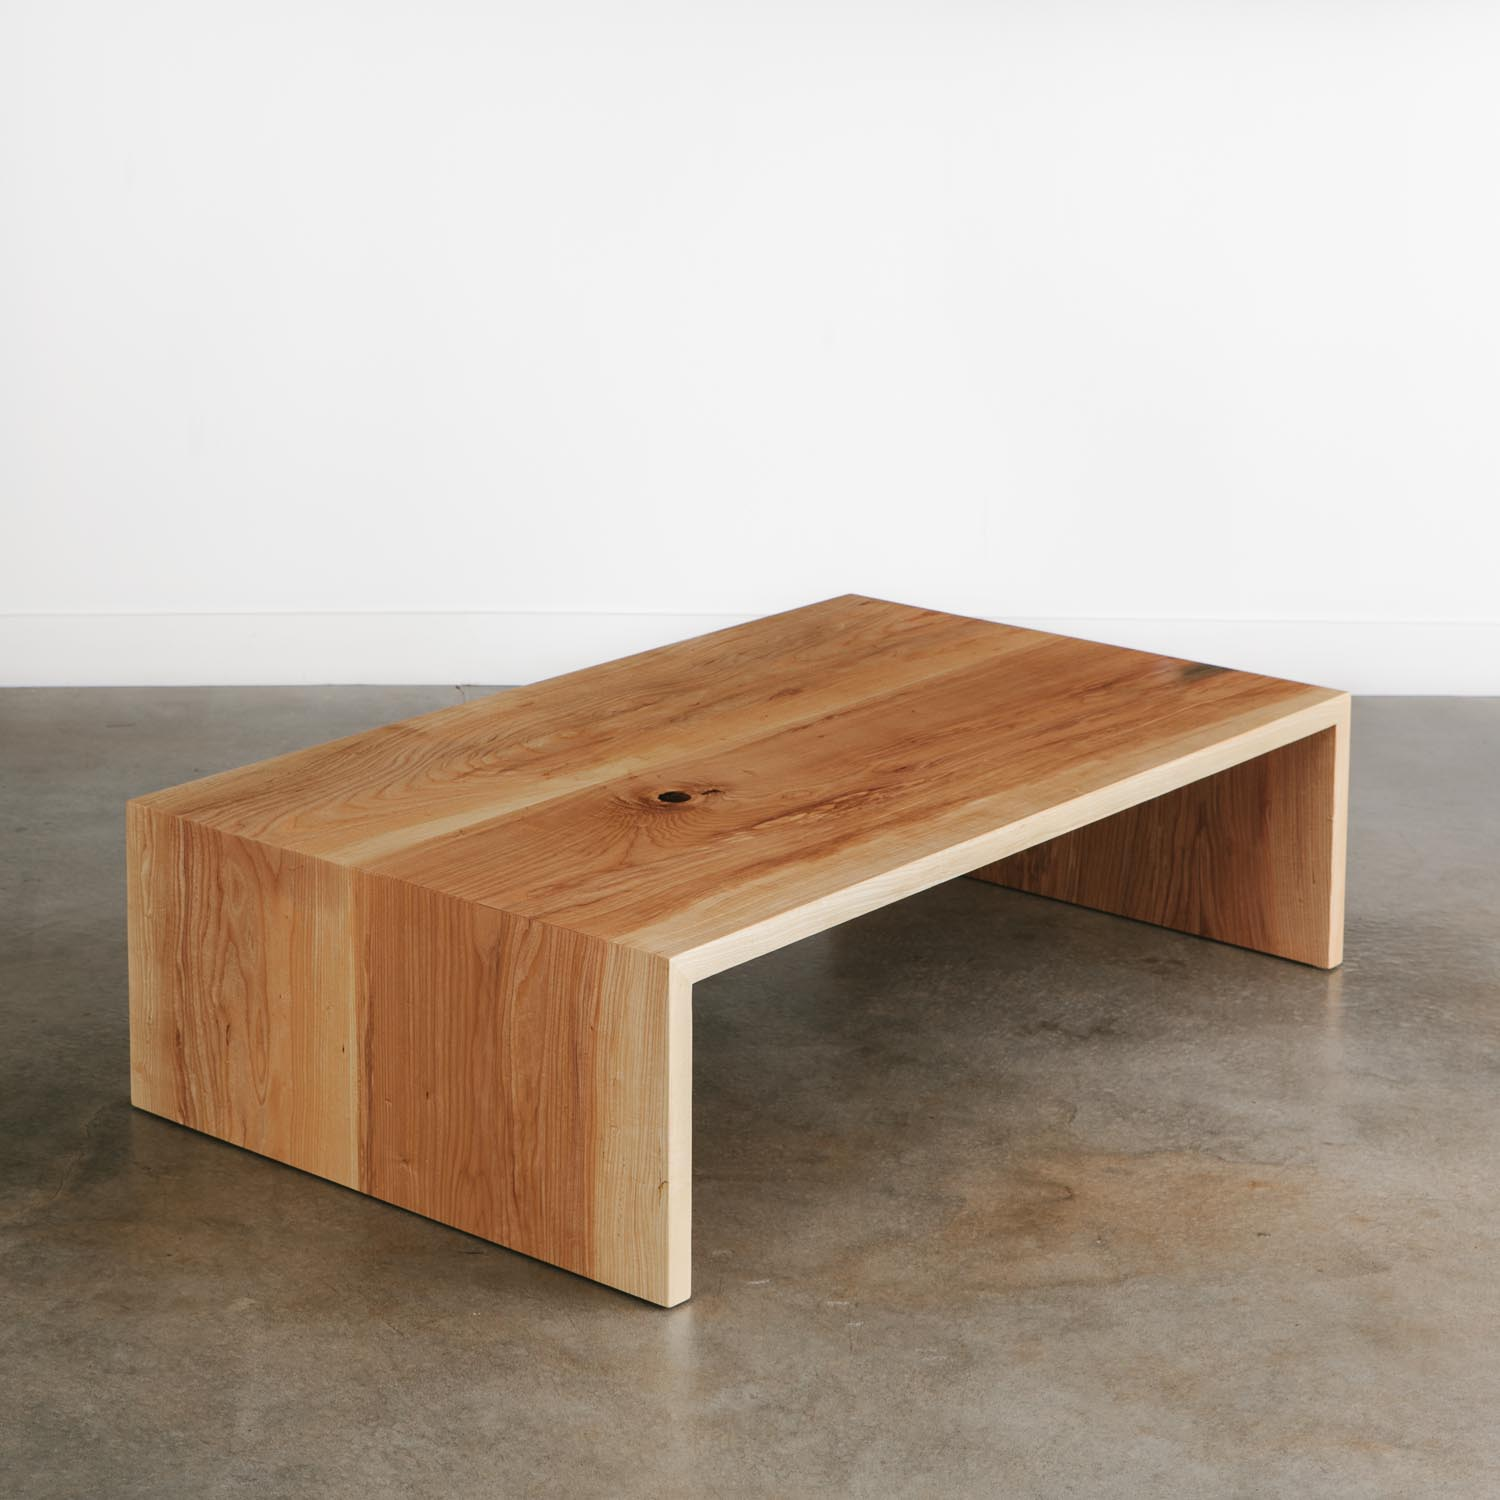 Modern Wood Coffee Table: Ash Coffee Table - Elko Hardwoods